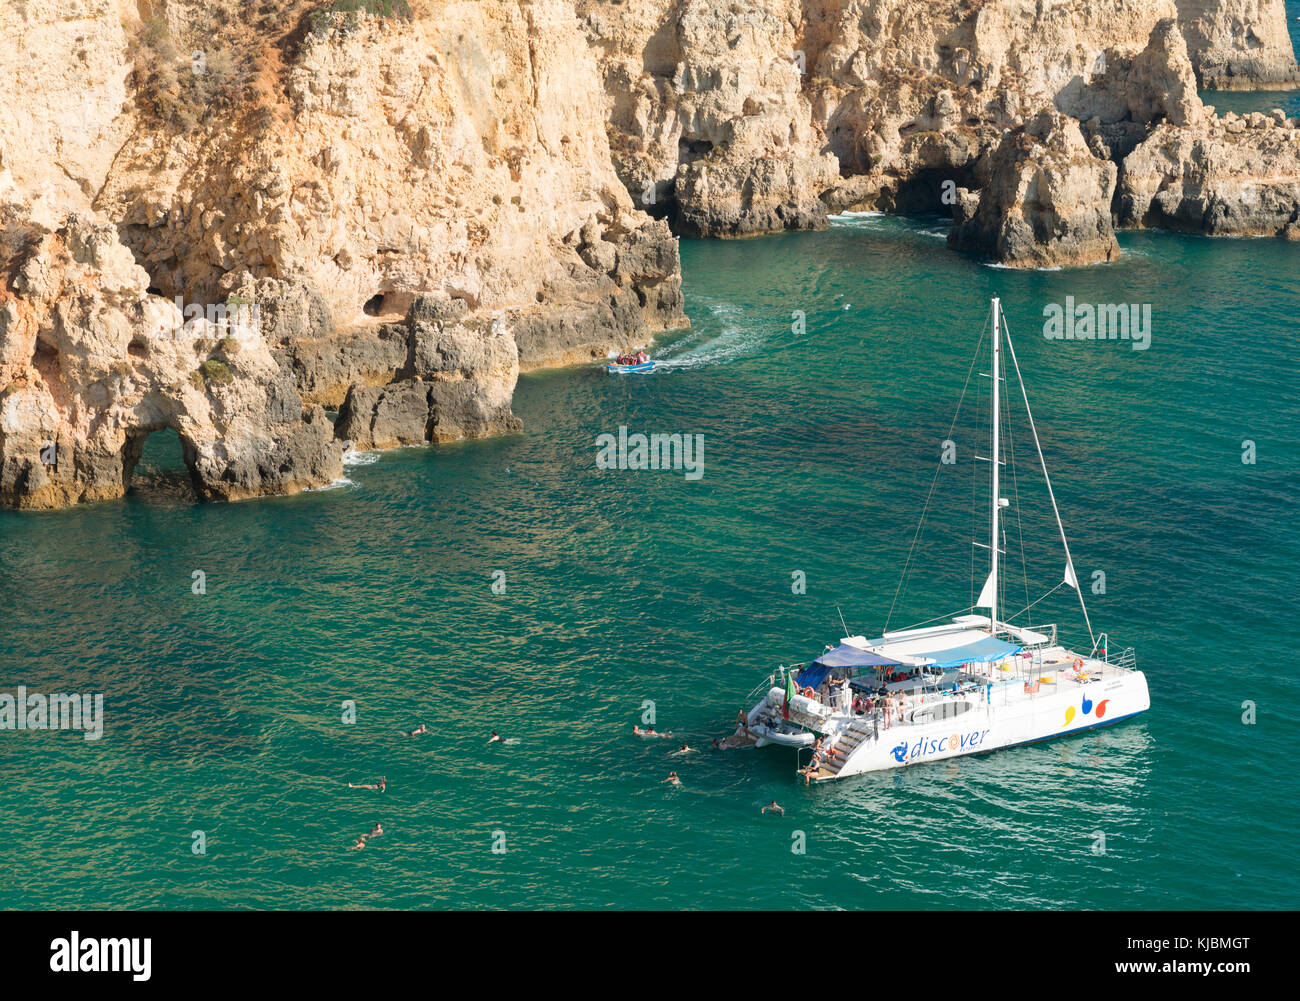 Catamaran in Algarve, Portugal, Europe - Stock Image